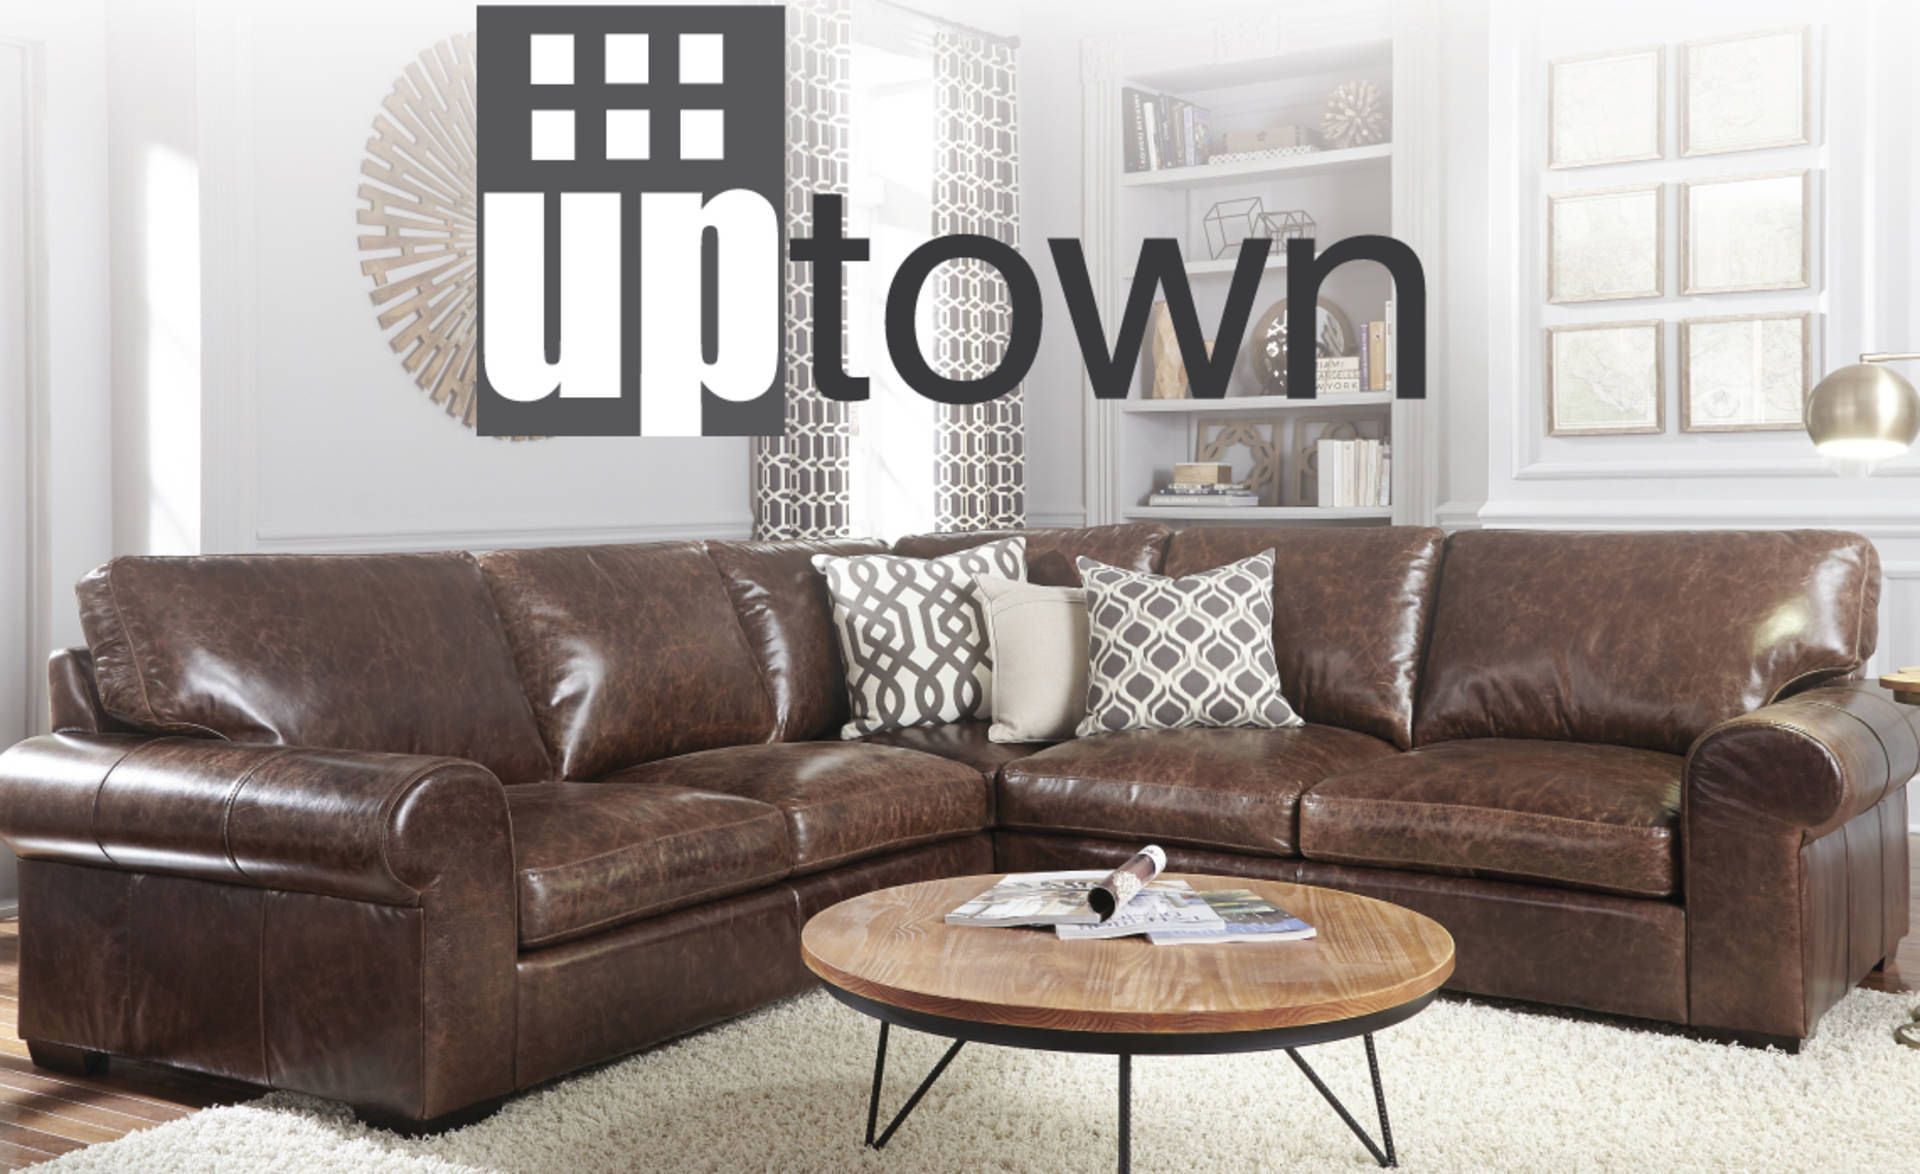 hom furniture furniture stores in minneapolis minnesota midwest uptown furniture